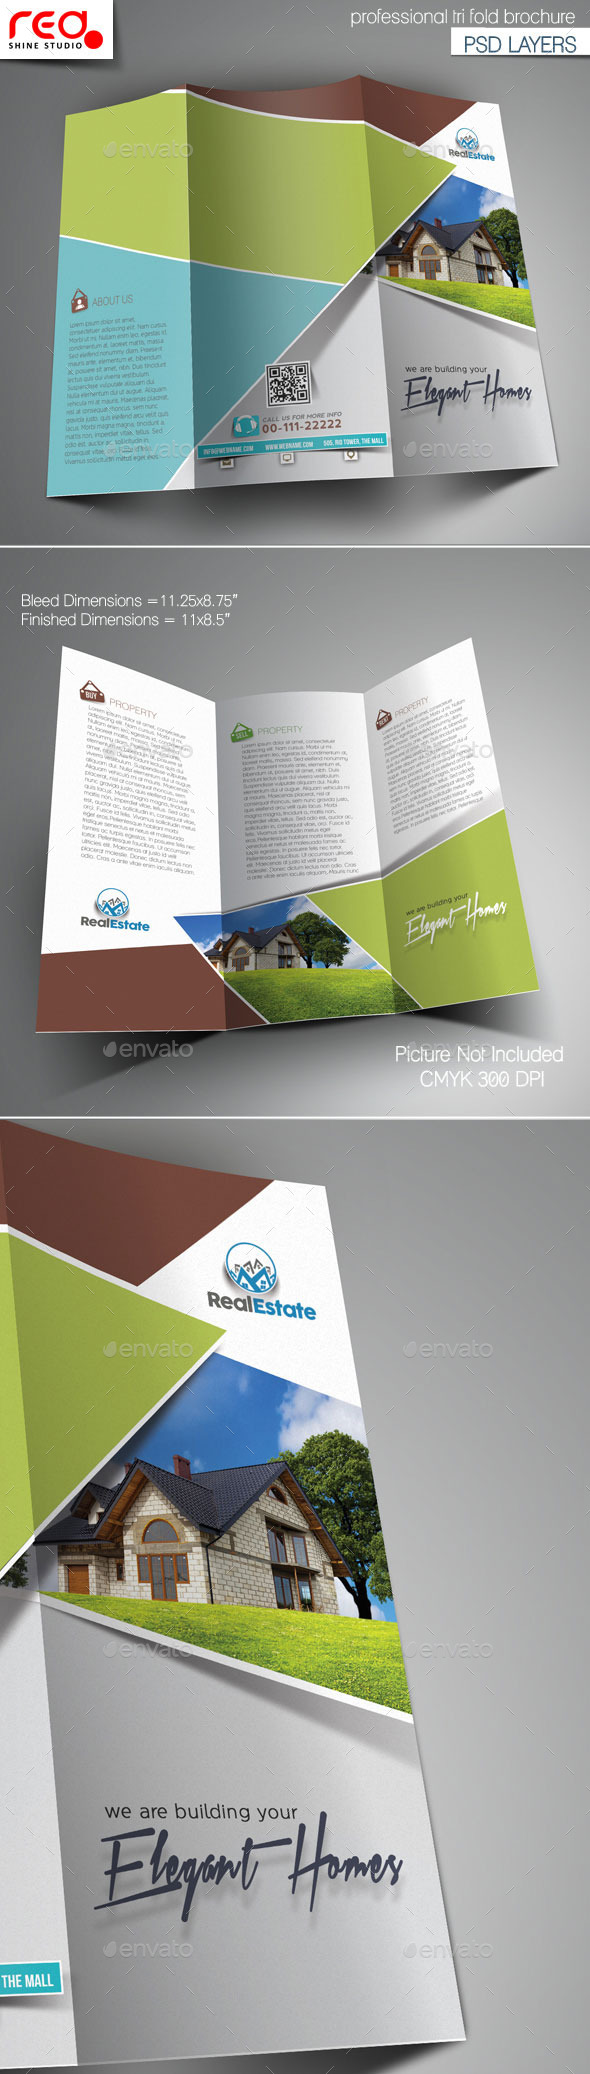 GraphicRiver Real Estate Multipurpose Trifold Brochure Template 11442655